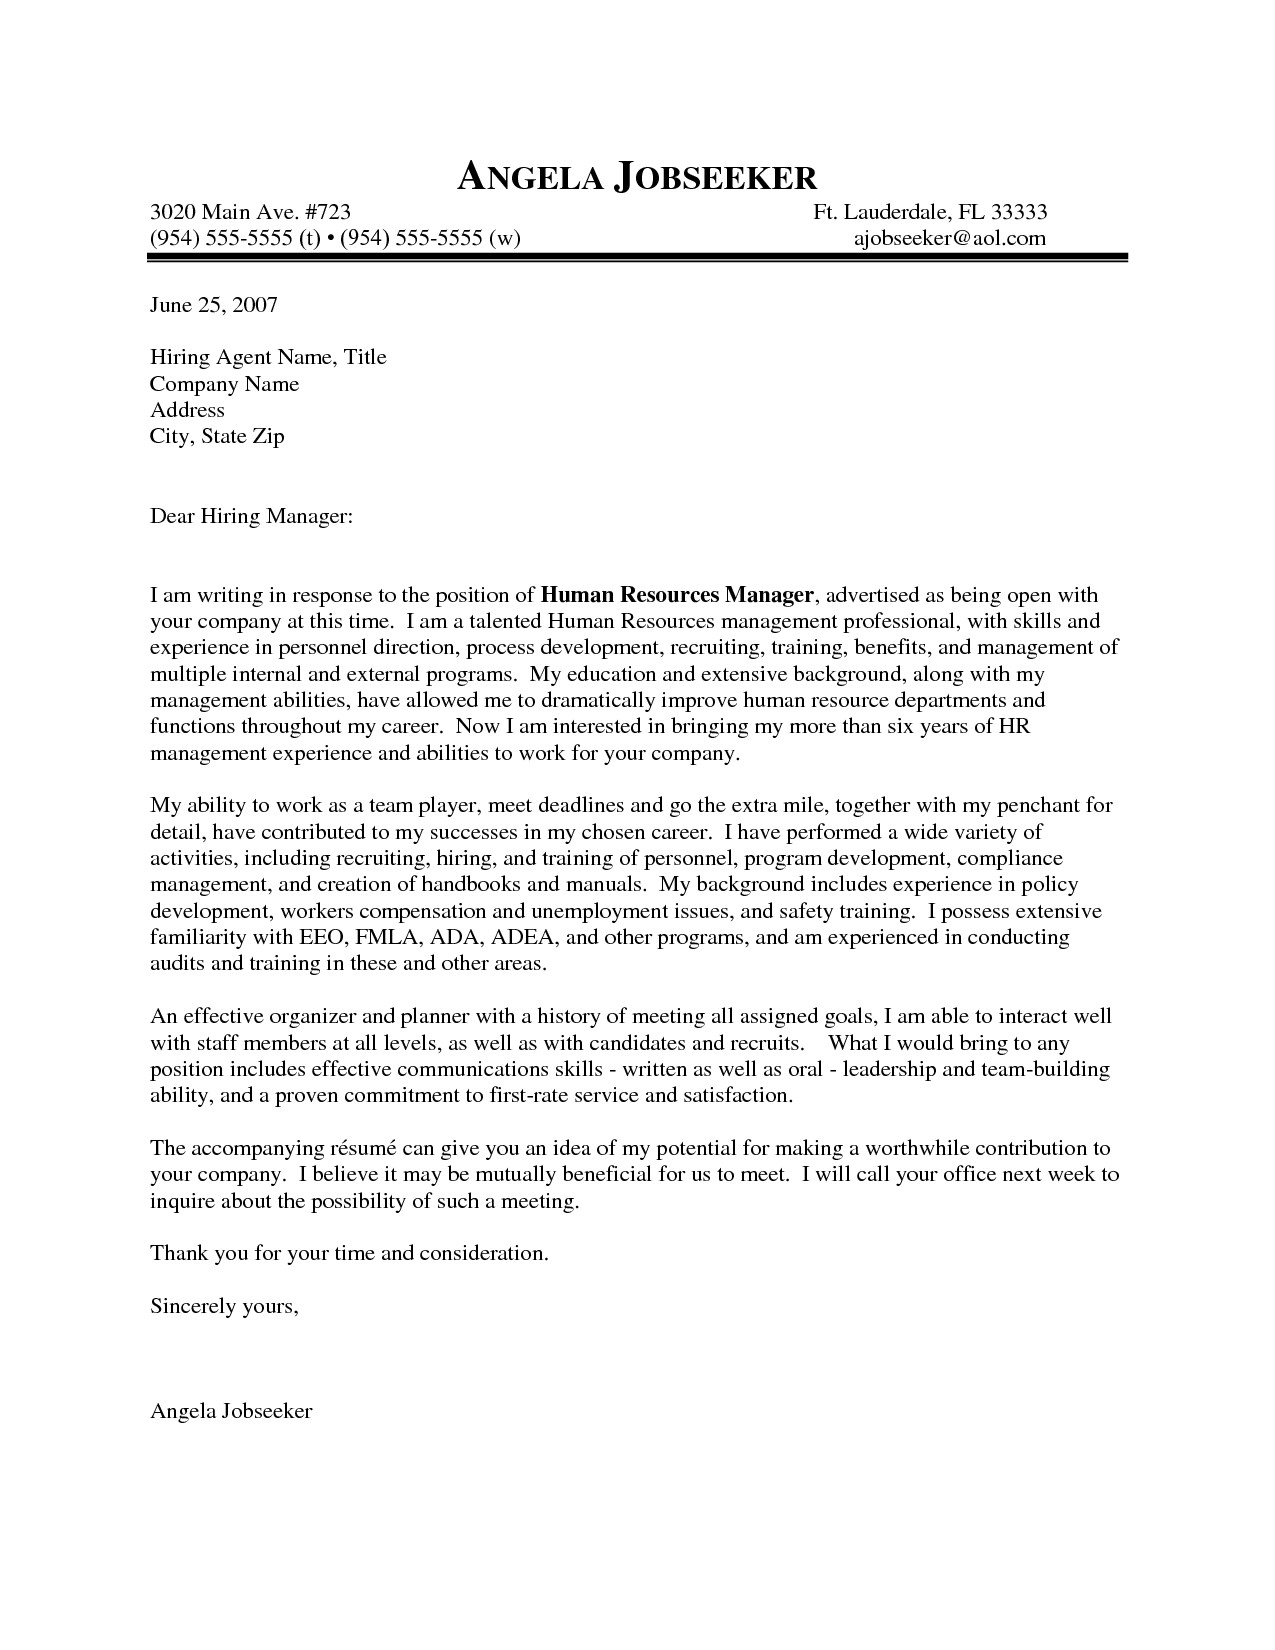 Best Cover Letter Template Outstanding Cover Letter Examples